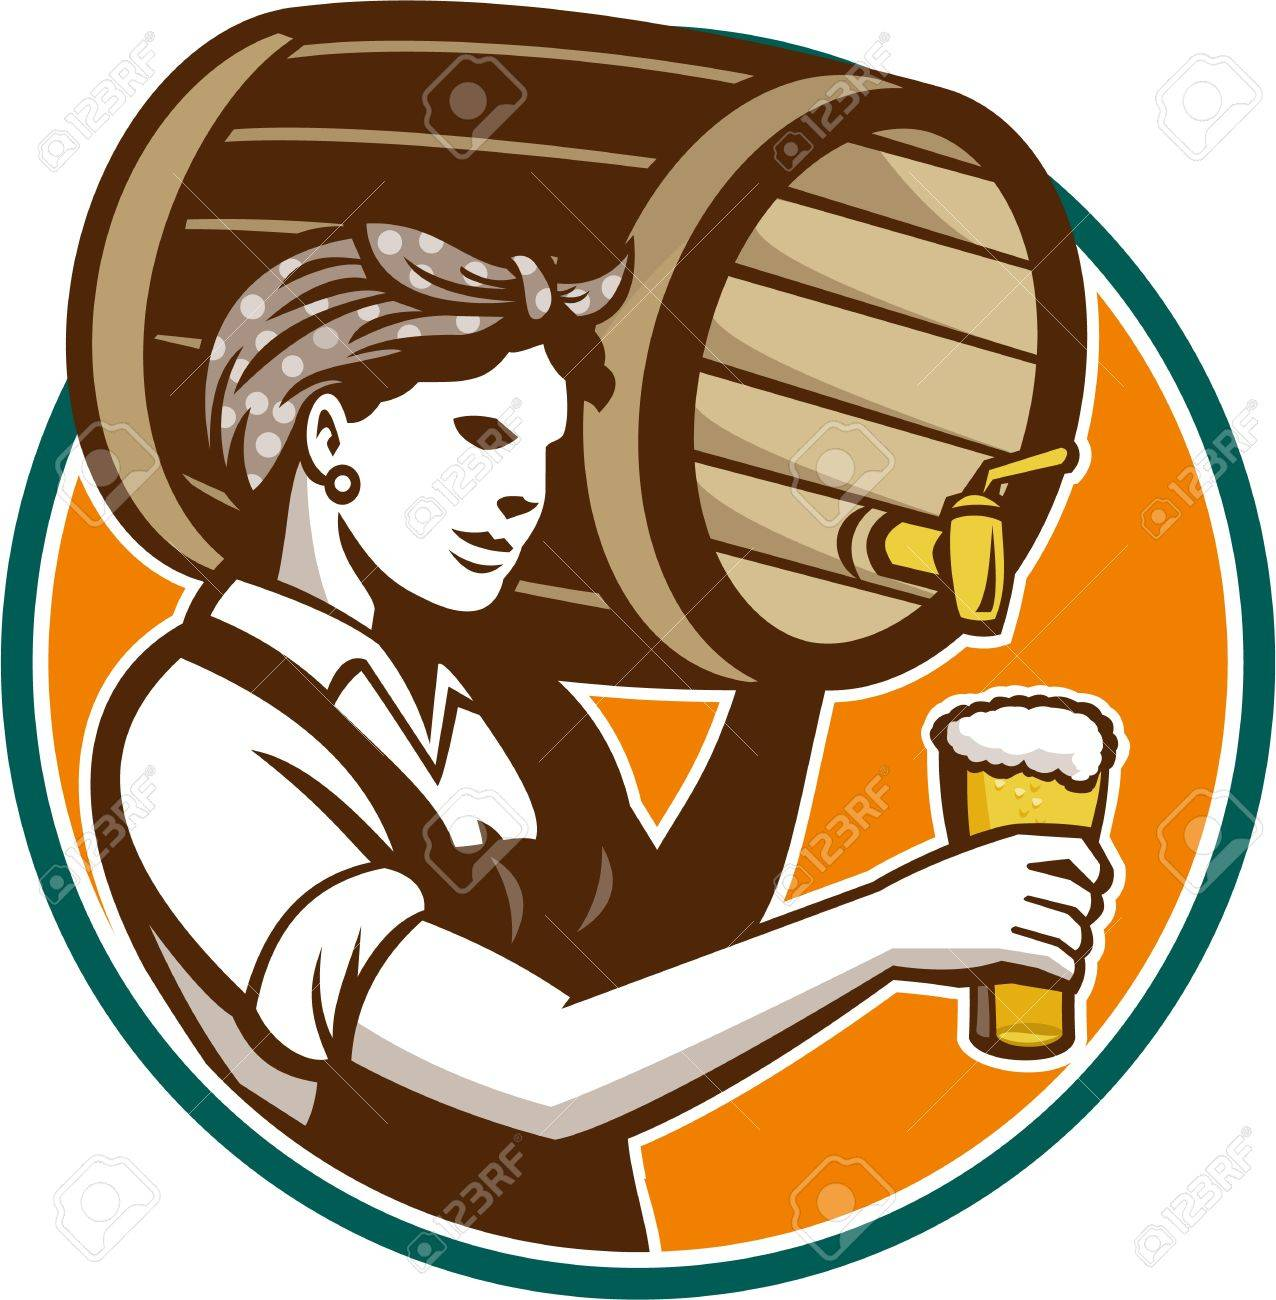 Retro style illustration of a female woman bartender pouring keg barrel of beer into pint glass set inside circle on isolated white background. Stock Vector - 21699919